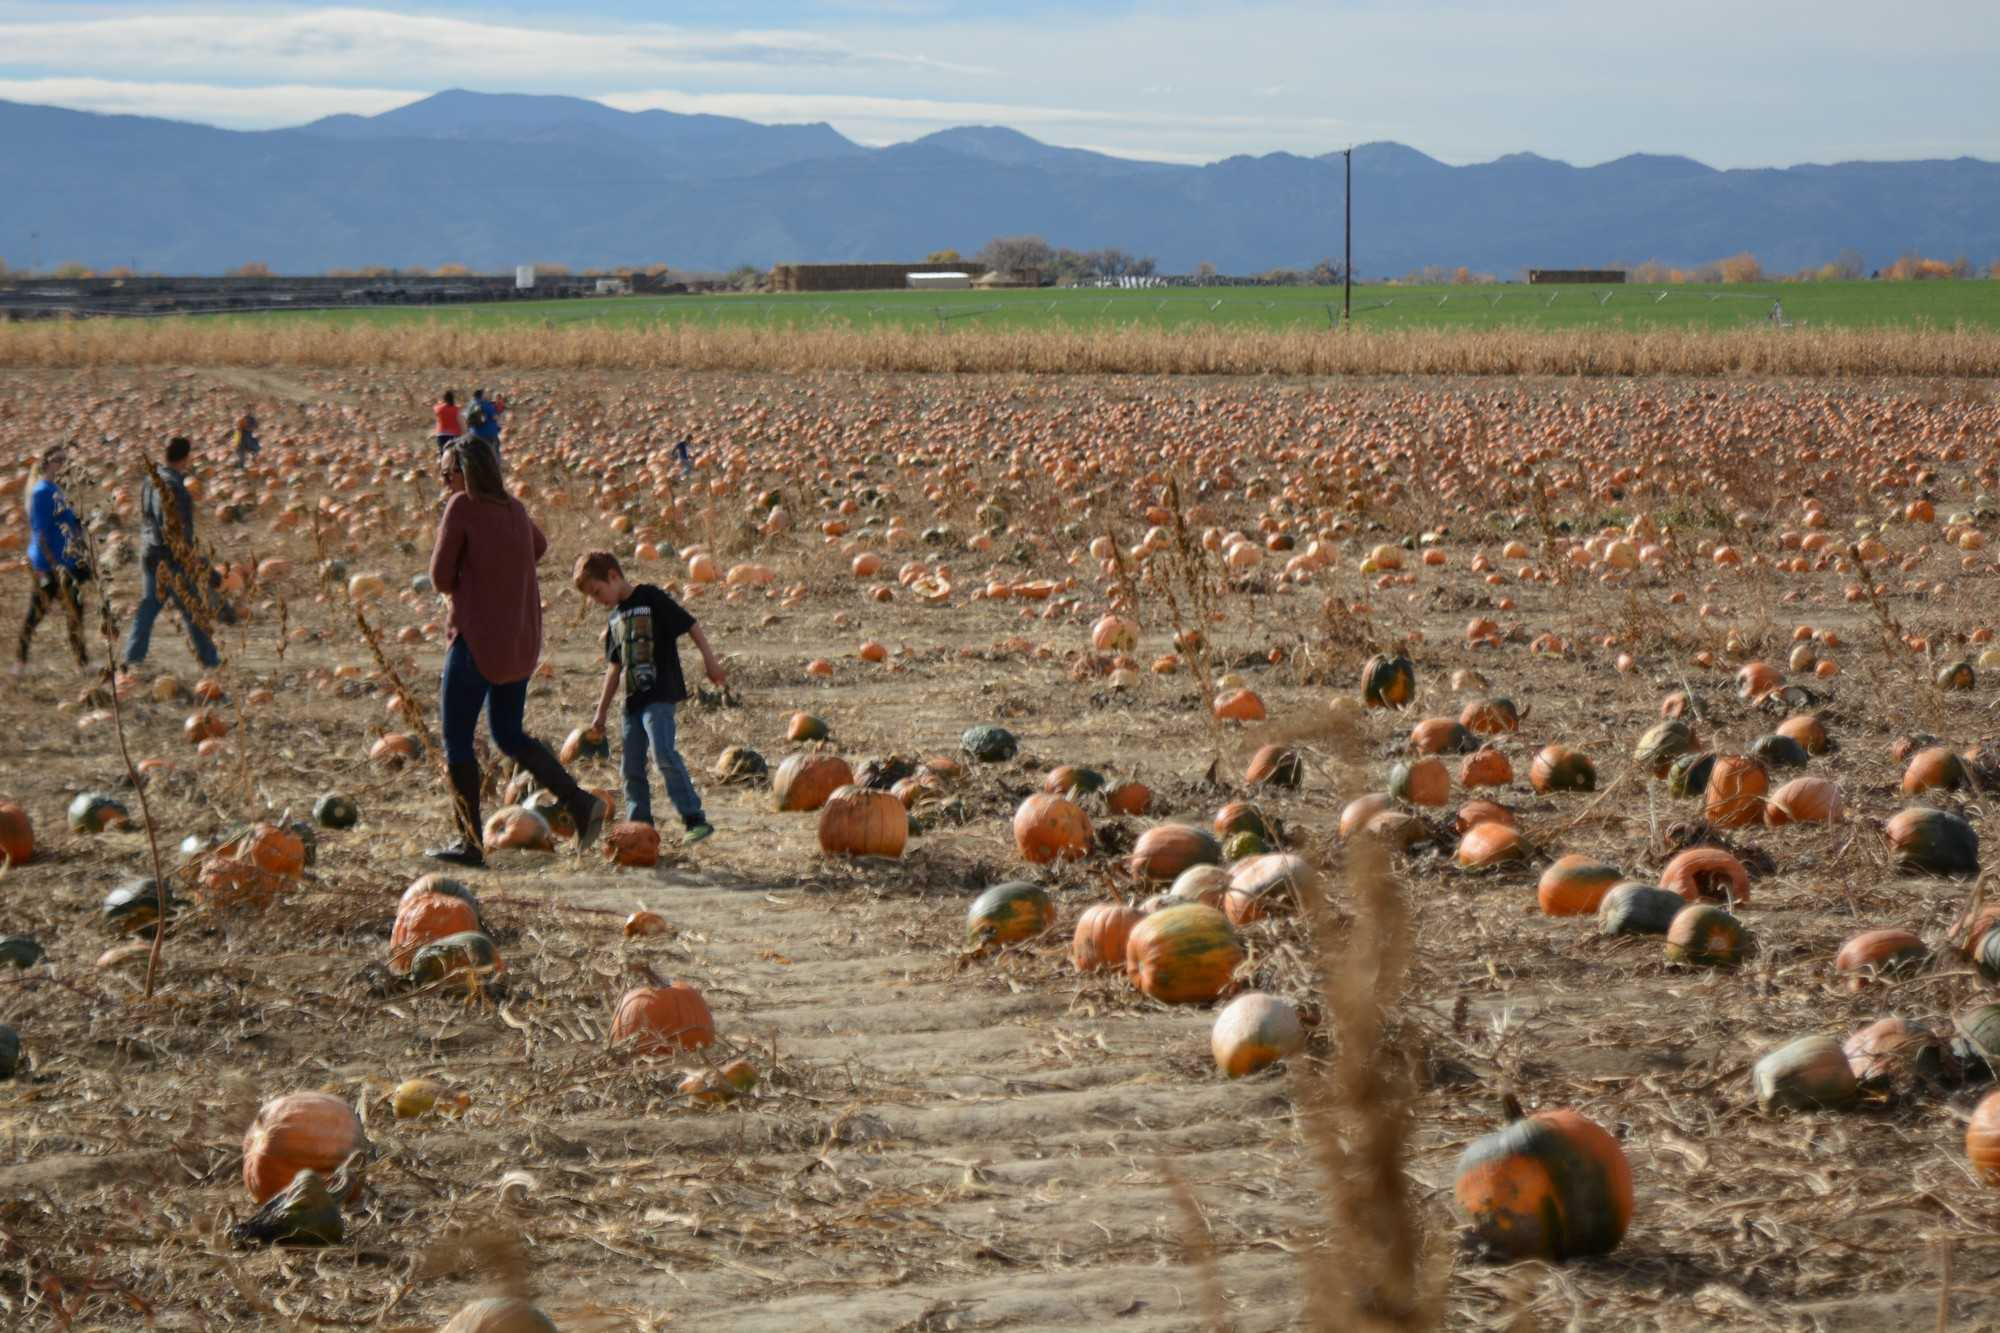 People enjoying a wonderful day at a pumpkin patch in Fort Collins, Colorado. Photo credit: Mackenzie Boltz